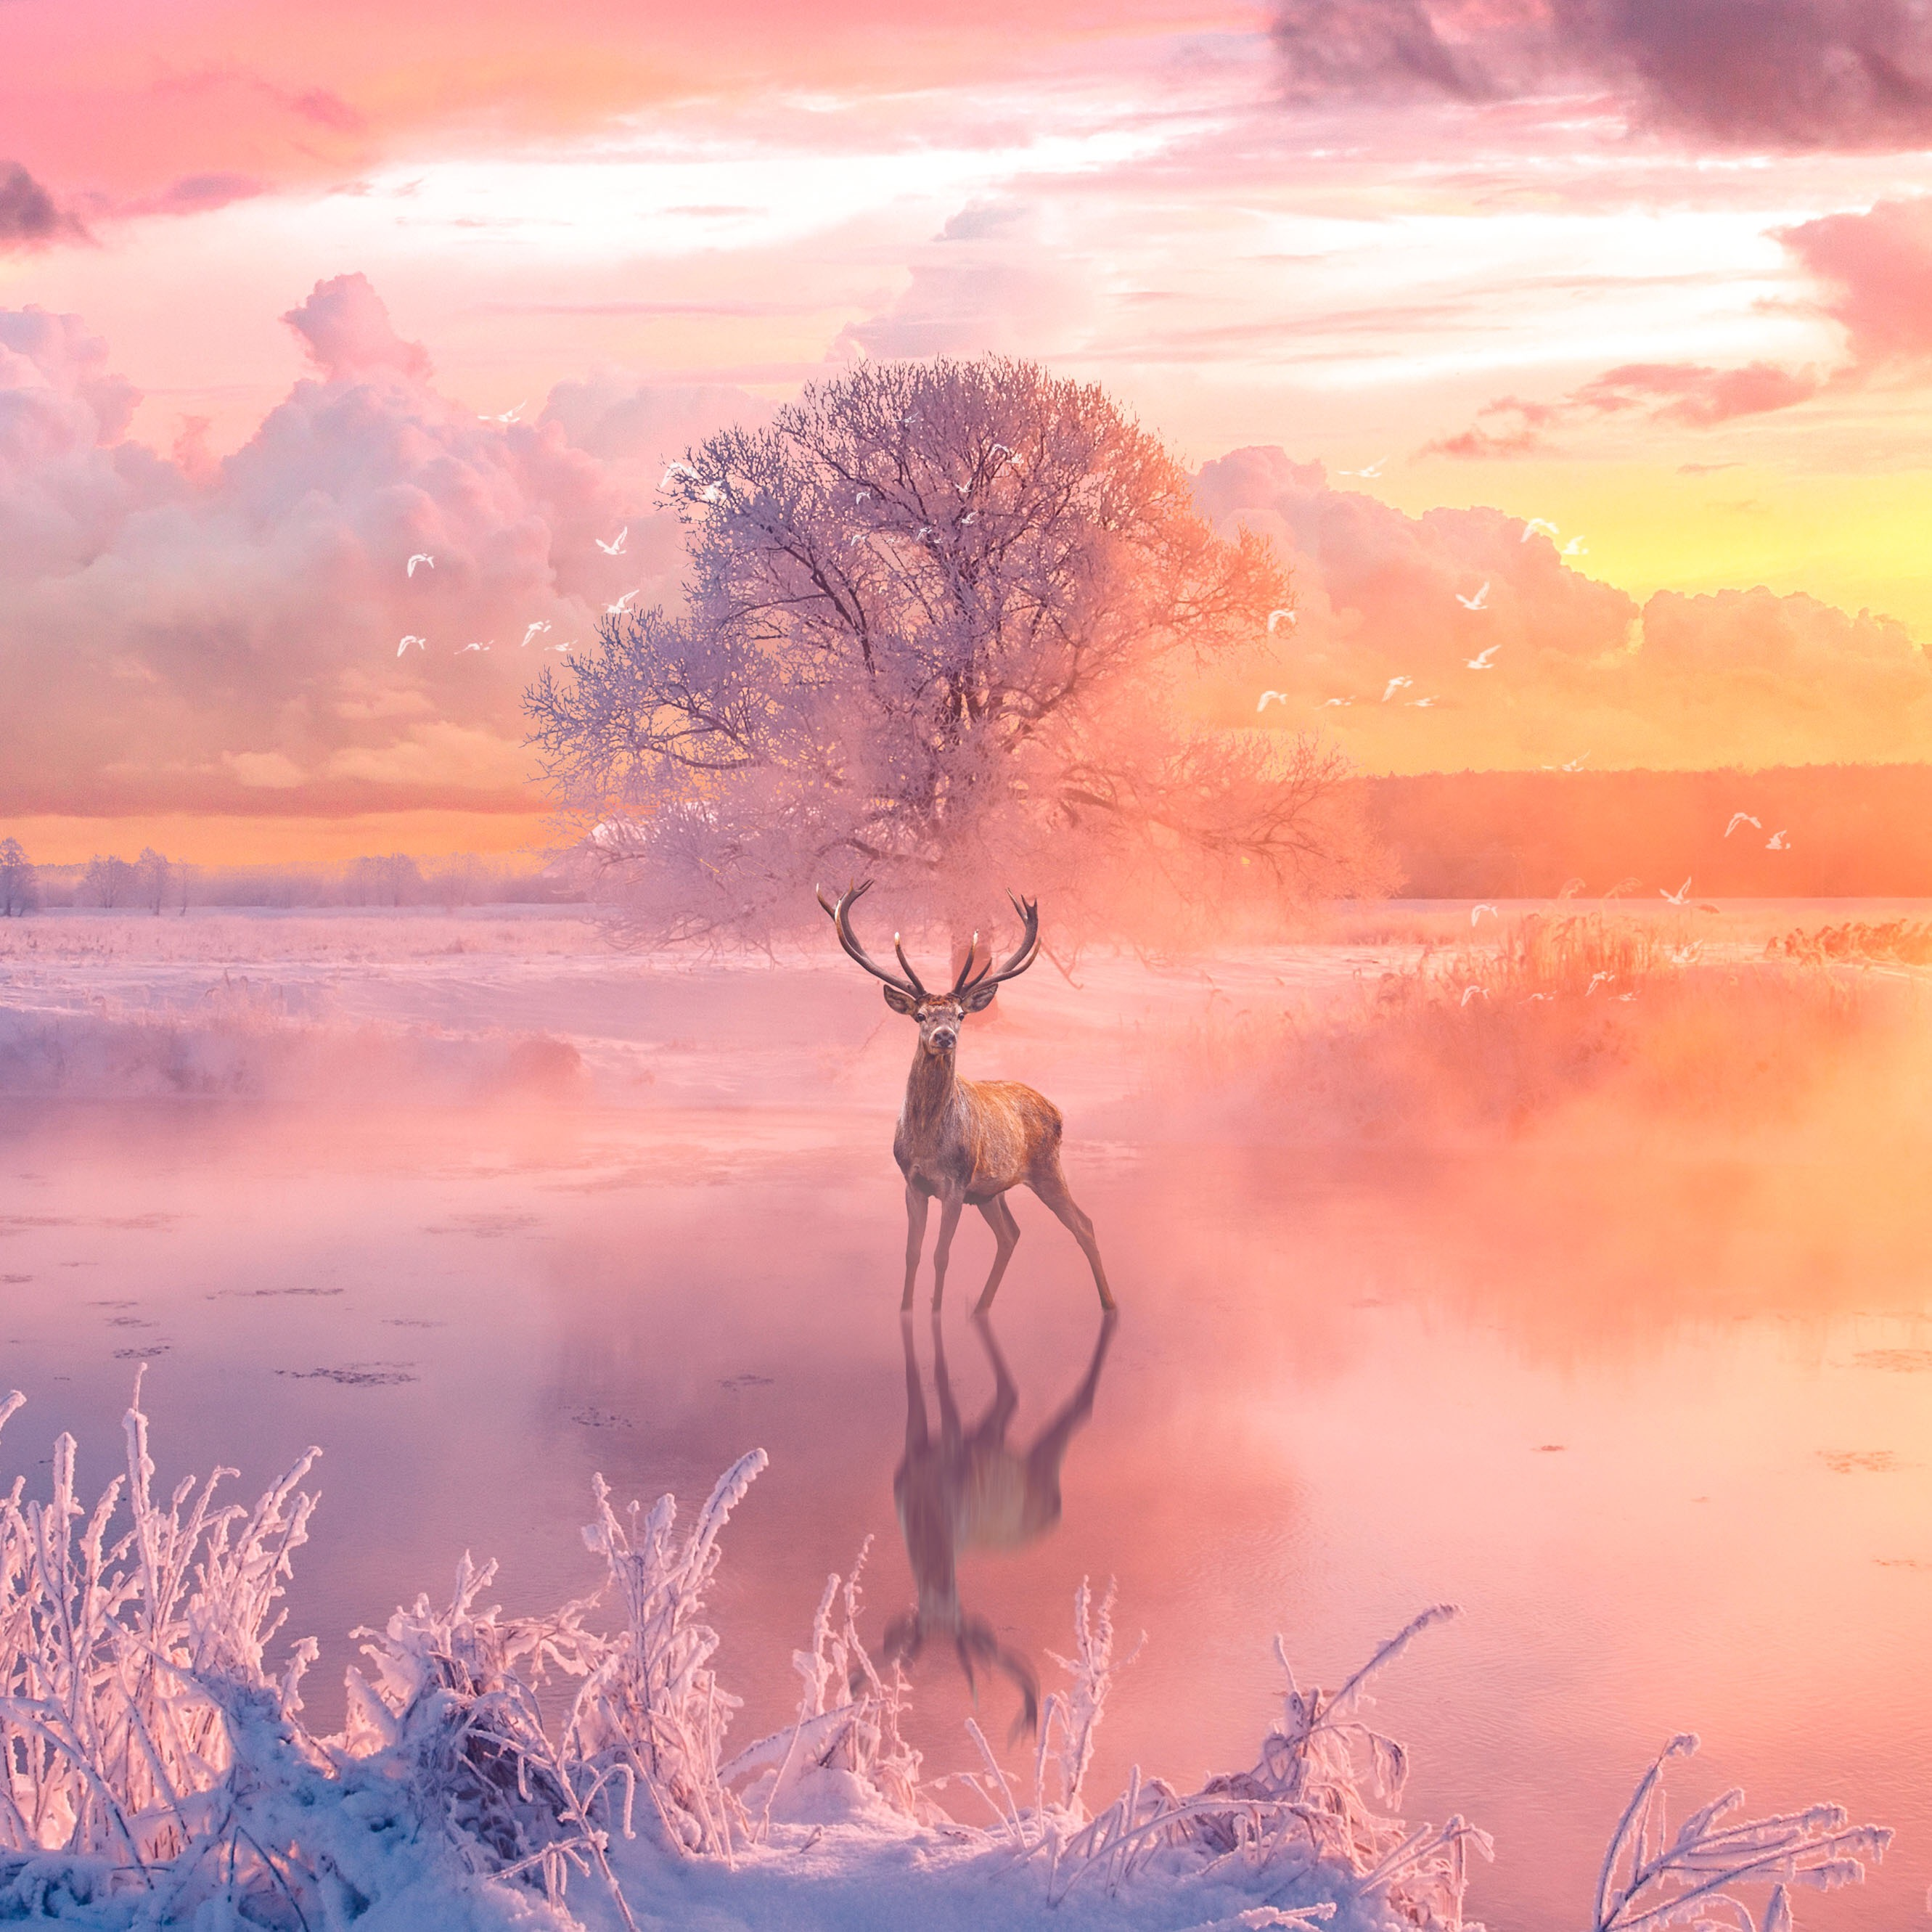 Hd 1600x900 Wallpaper: 1600x900 Reindeer Fantasy Arts 1600x900 Resolution HD 4k